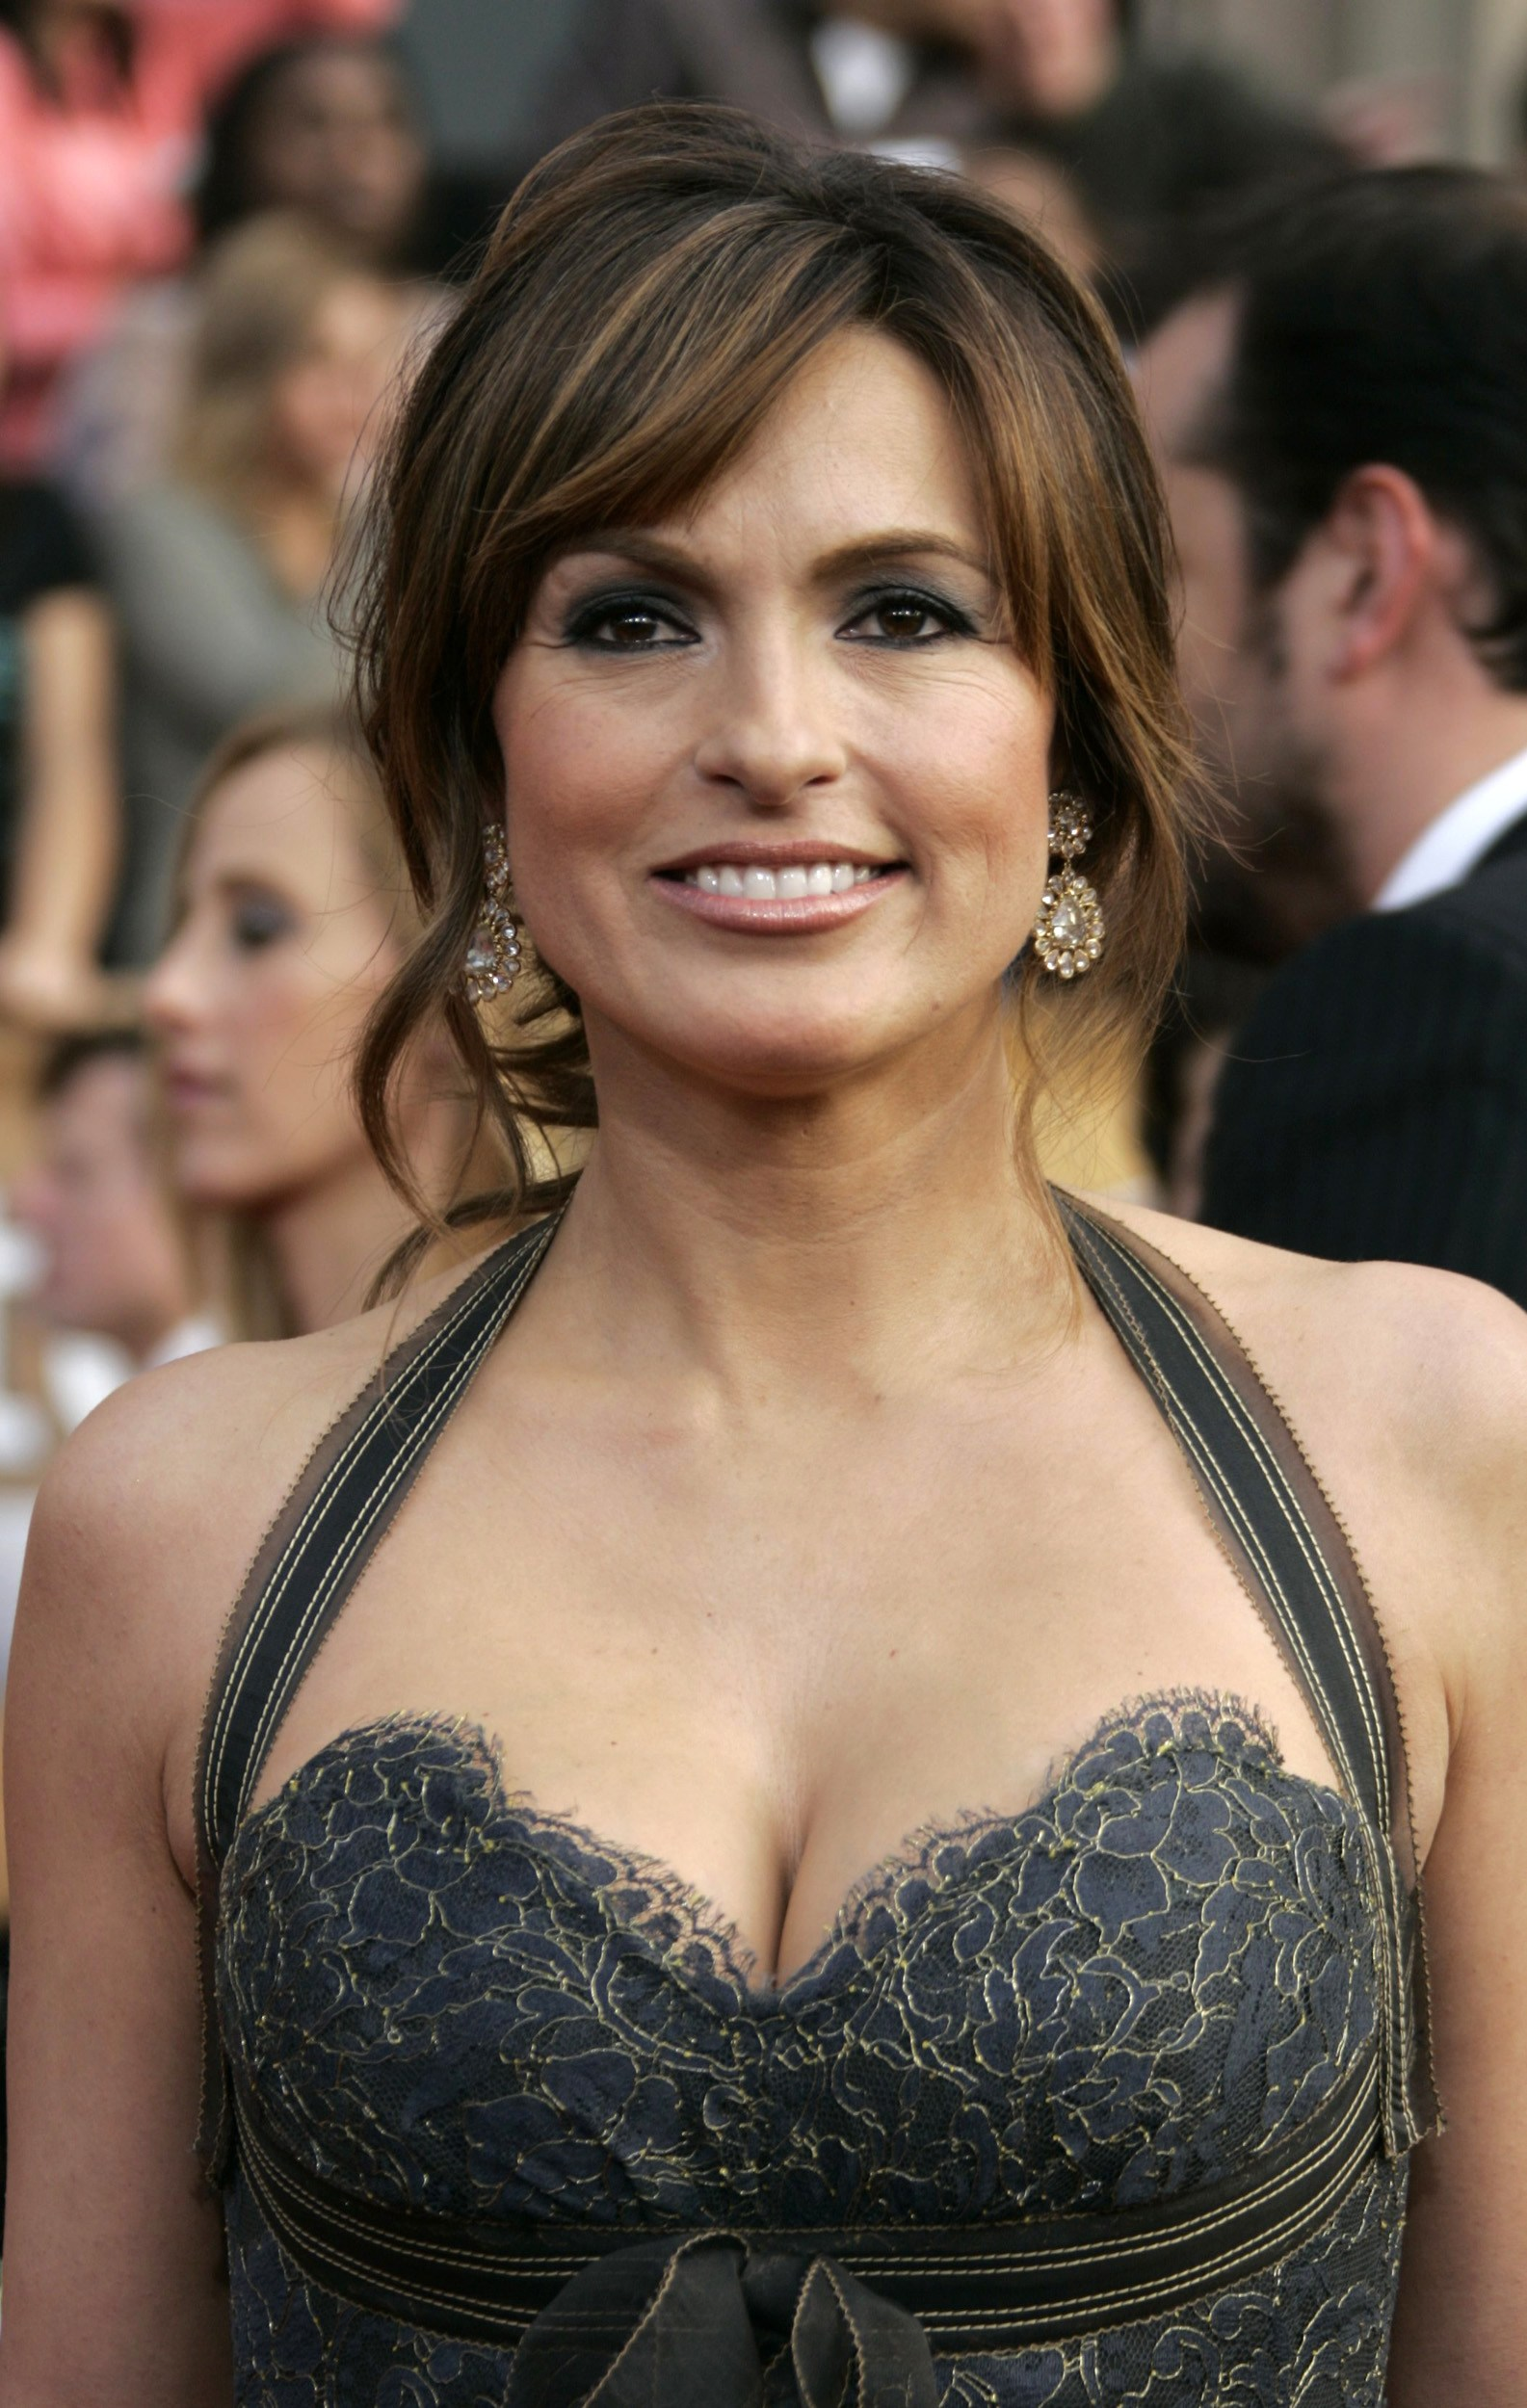 hermann cougar women Find this pin and more on beautiful and sexy cougar law and order olivia benson mom hair benson and stabler hair cut peter hermann many women will not.